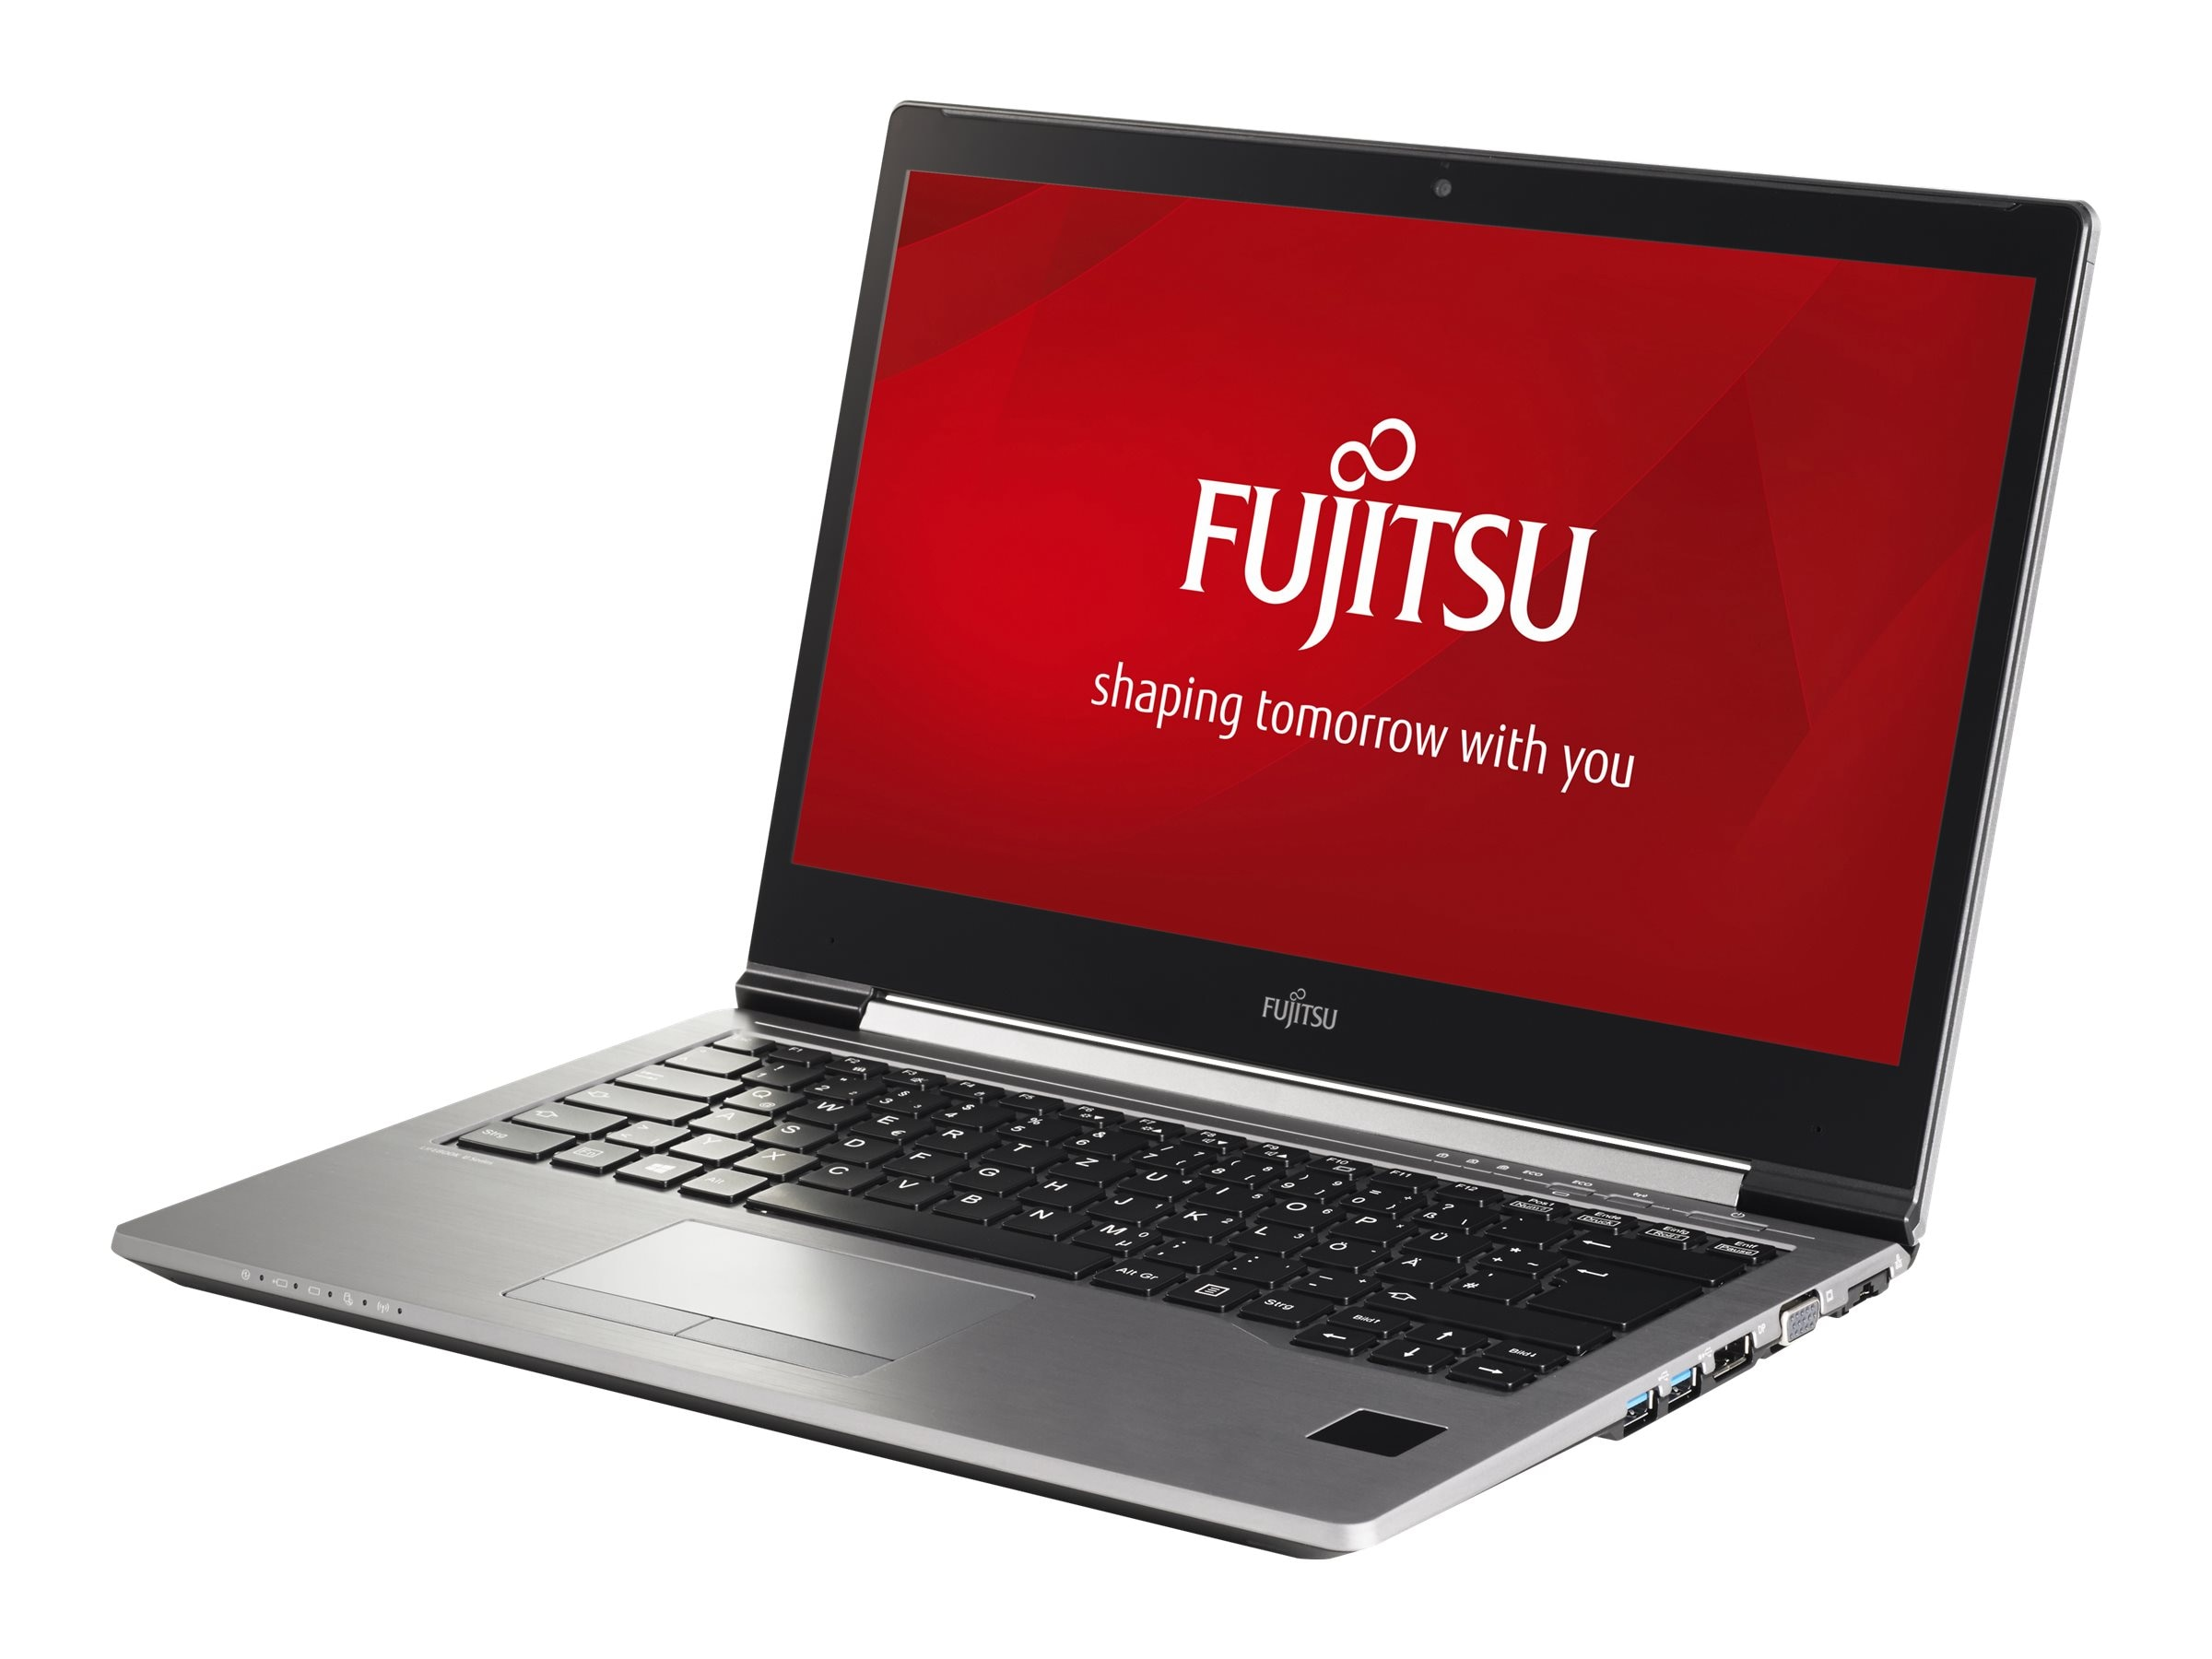 Fujitsu LifeBook U745 Core i5-5200U 2.2GHz 8GB 128GB SSD ac GNIC BT FR WC 4C 14 HD+ W10P64